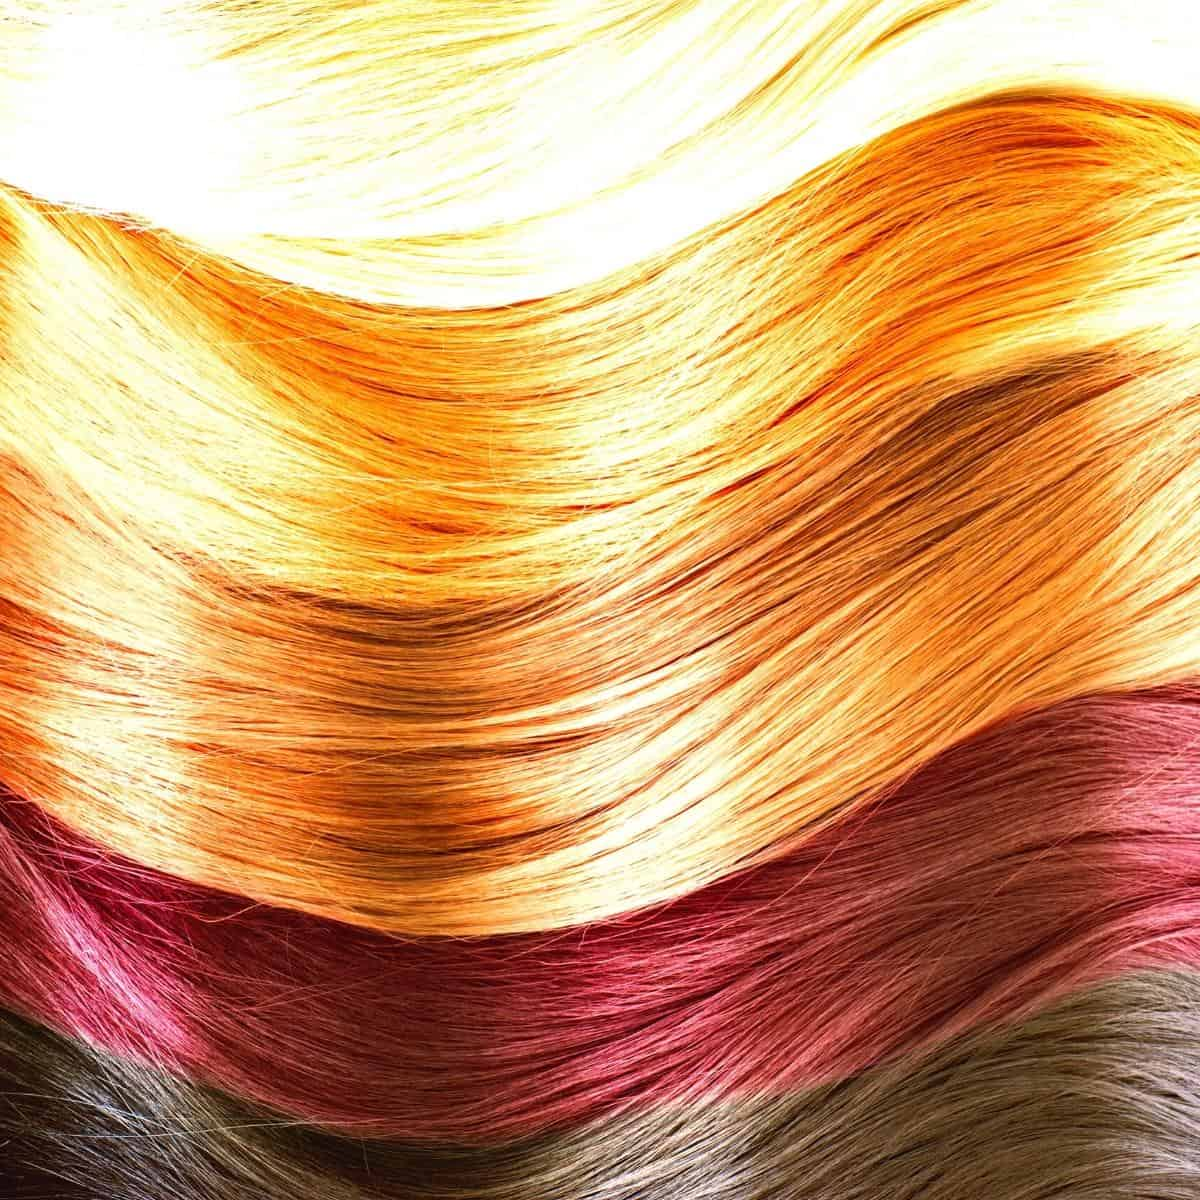 Human Hair Wigs Ways to Help the Sick and Suffering